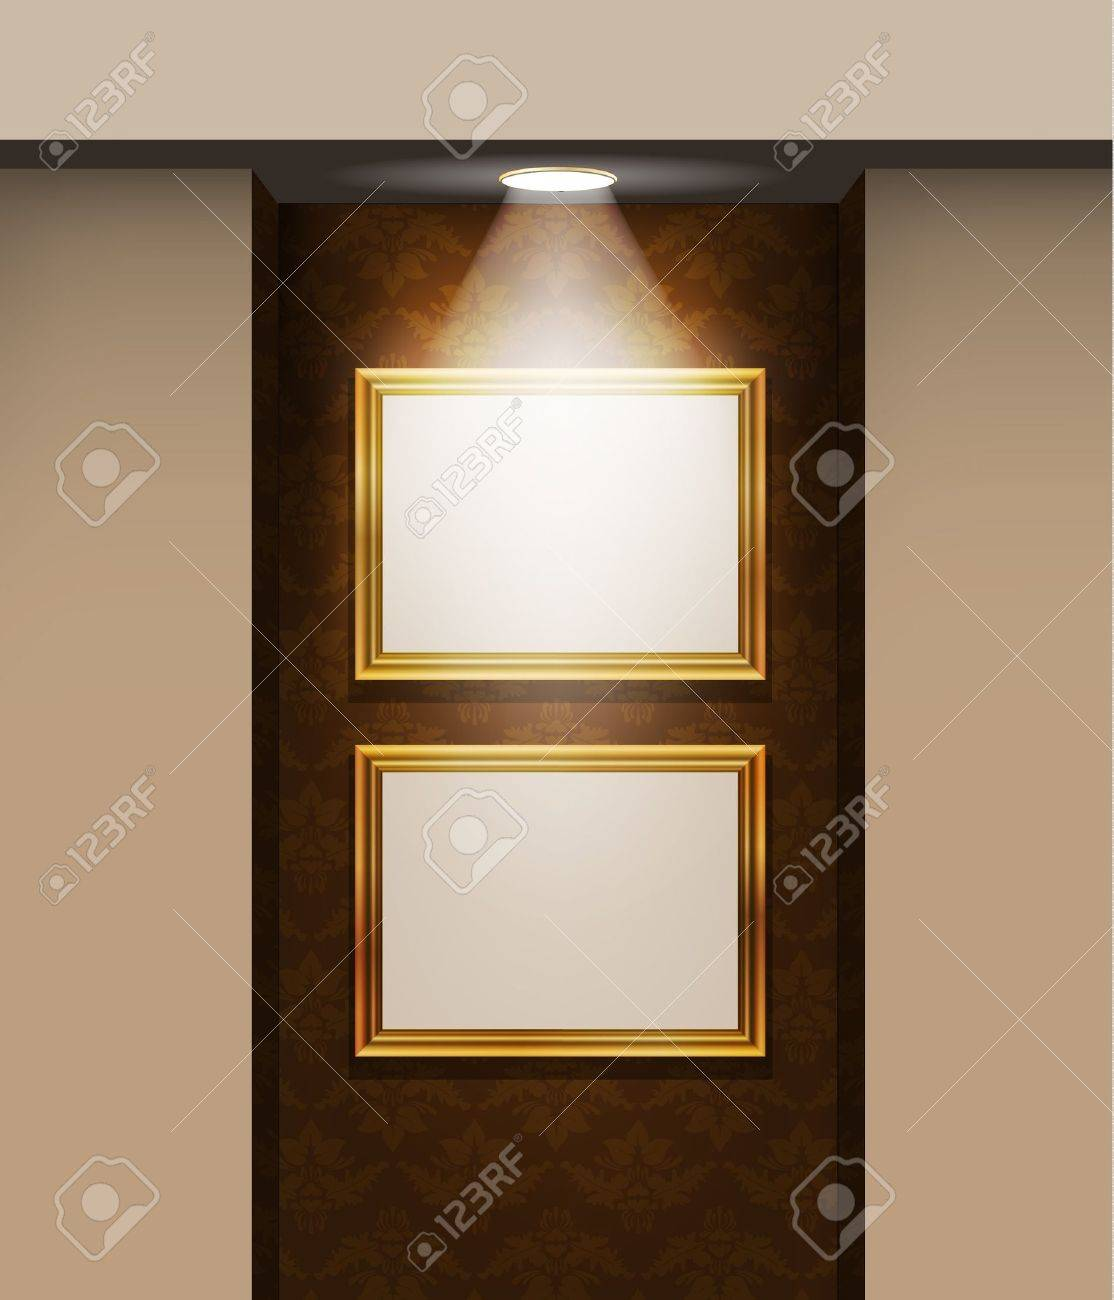 Picture frames on the wall in the room Stock Vector - 11082635